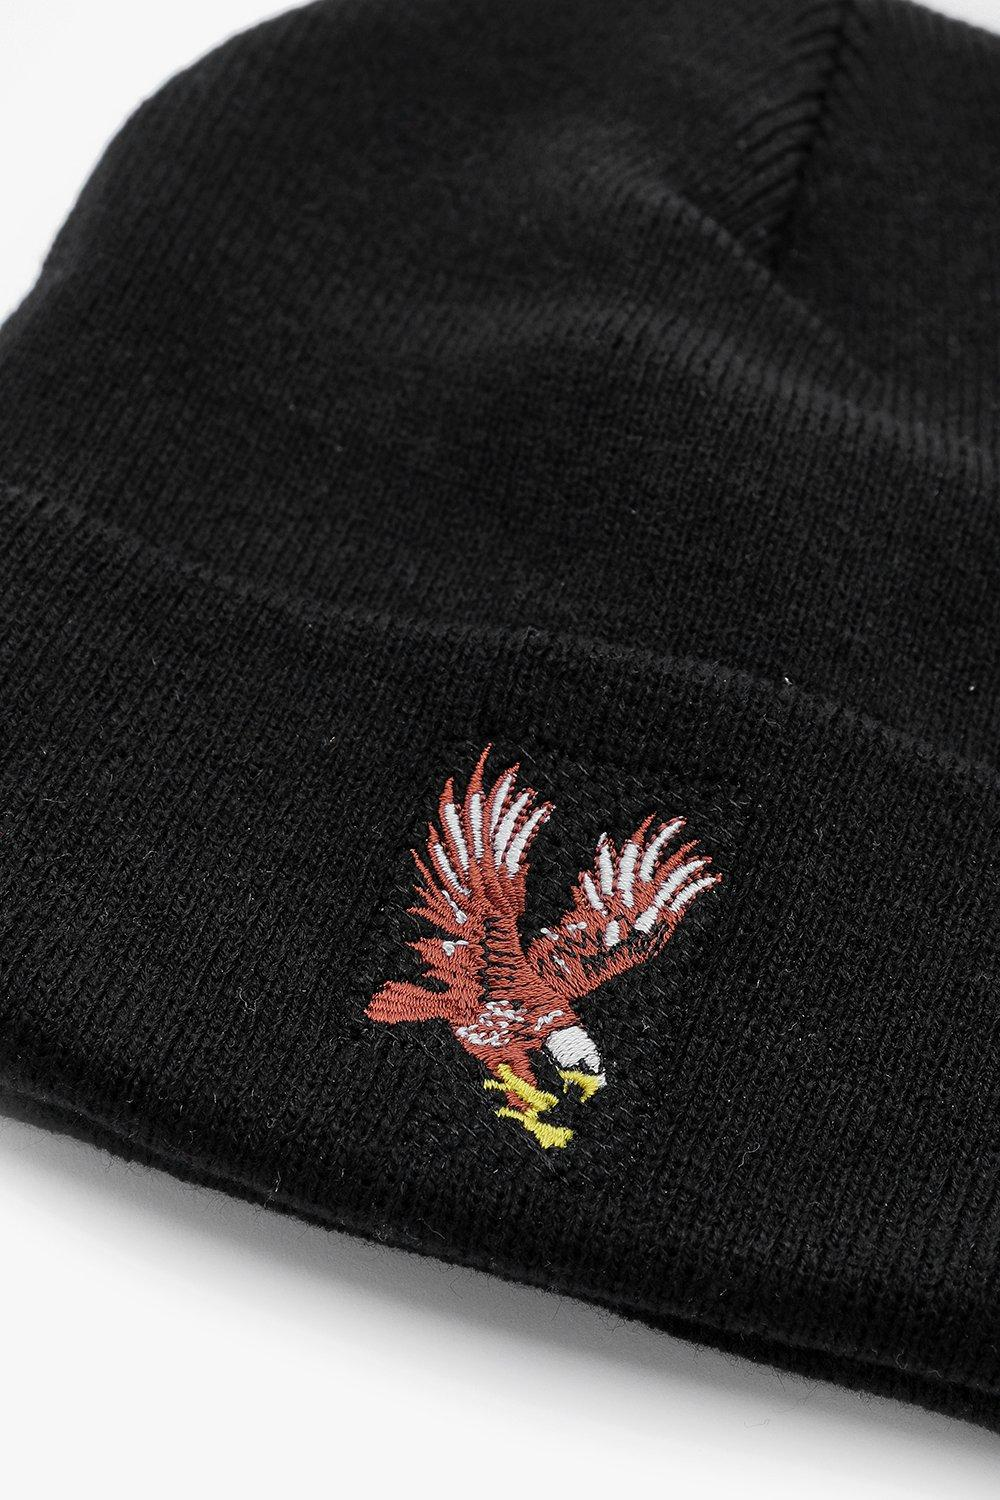 079fb72bbbd ... Eagle Embroidery Beanie for Men - Lyst. View fullscreen